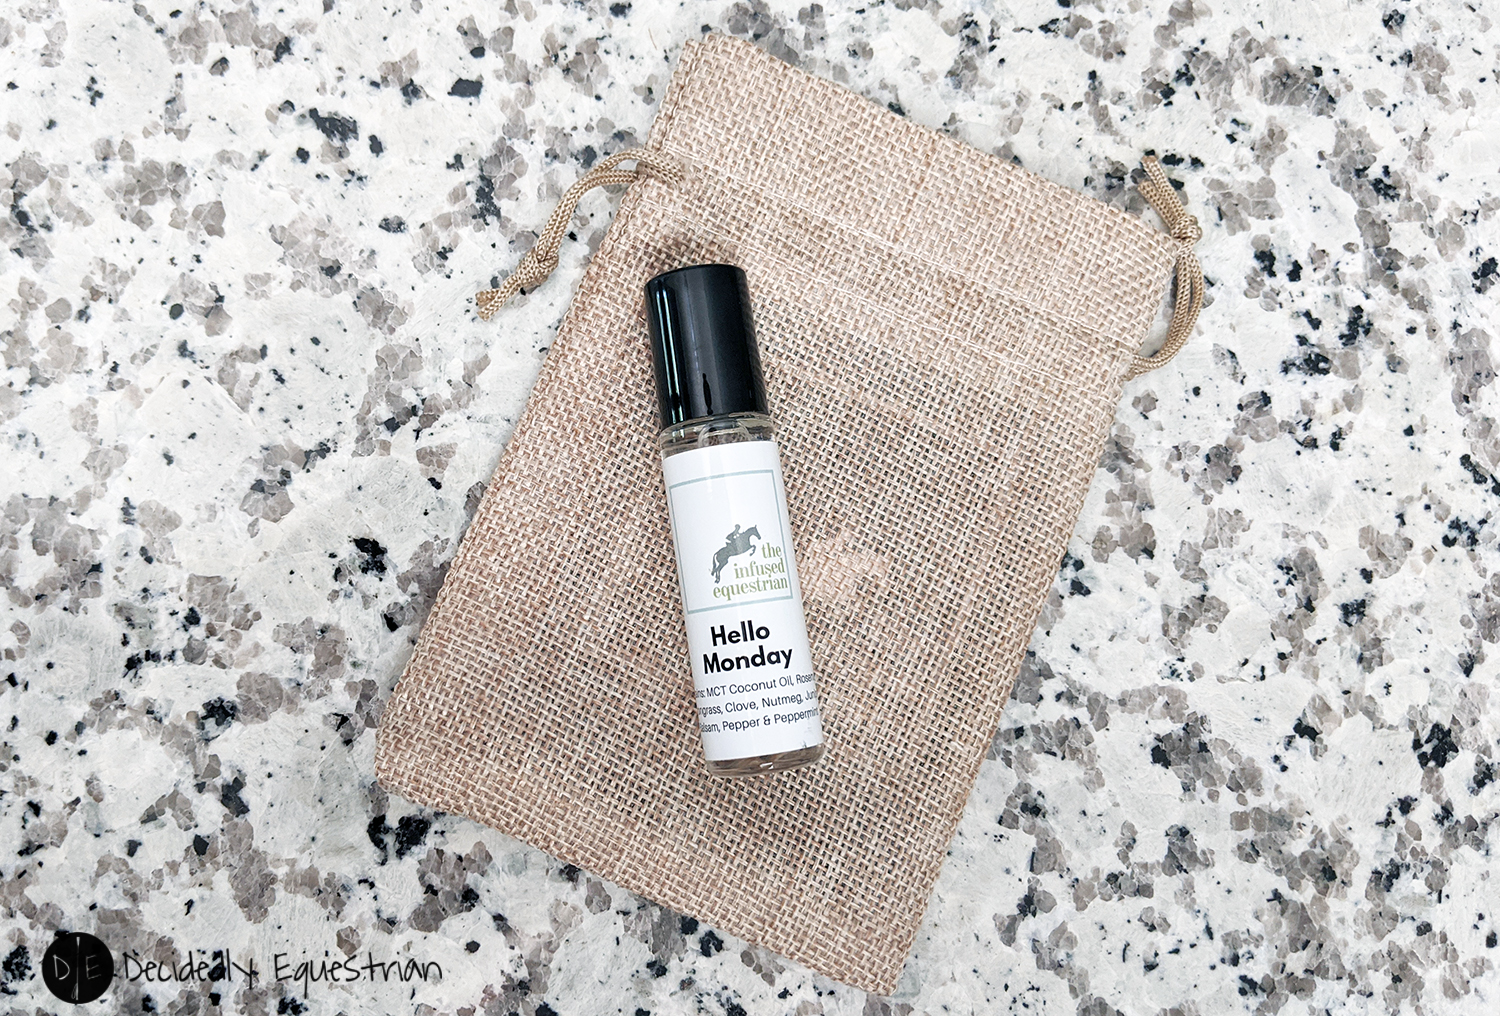 The Infused Equestrian Hello Monday Roller Blend Review